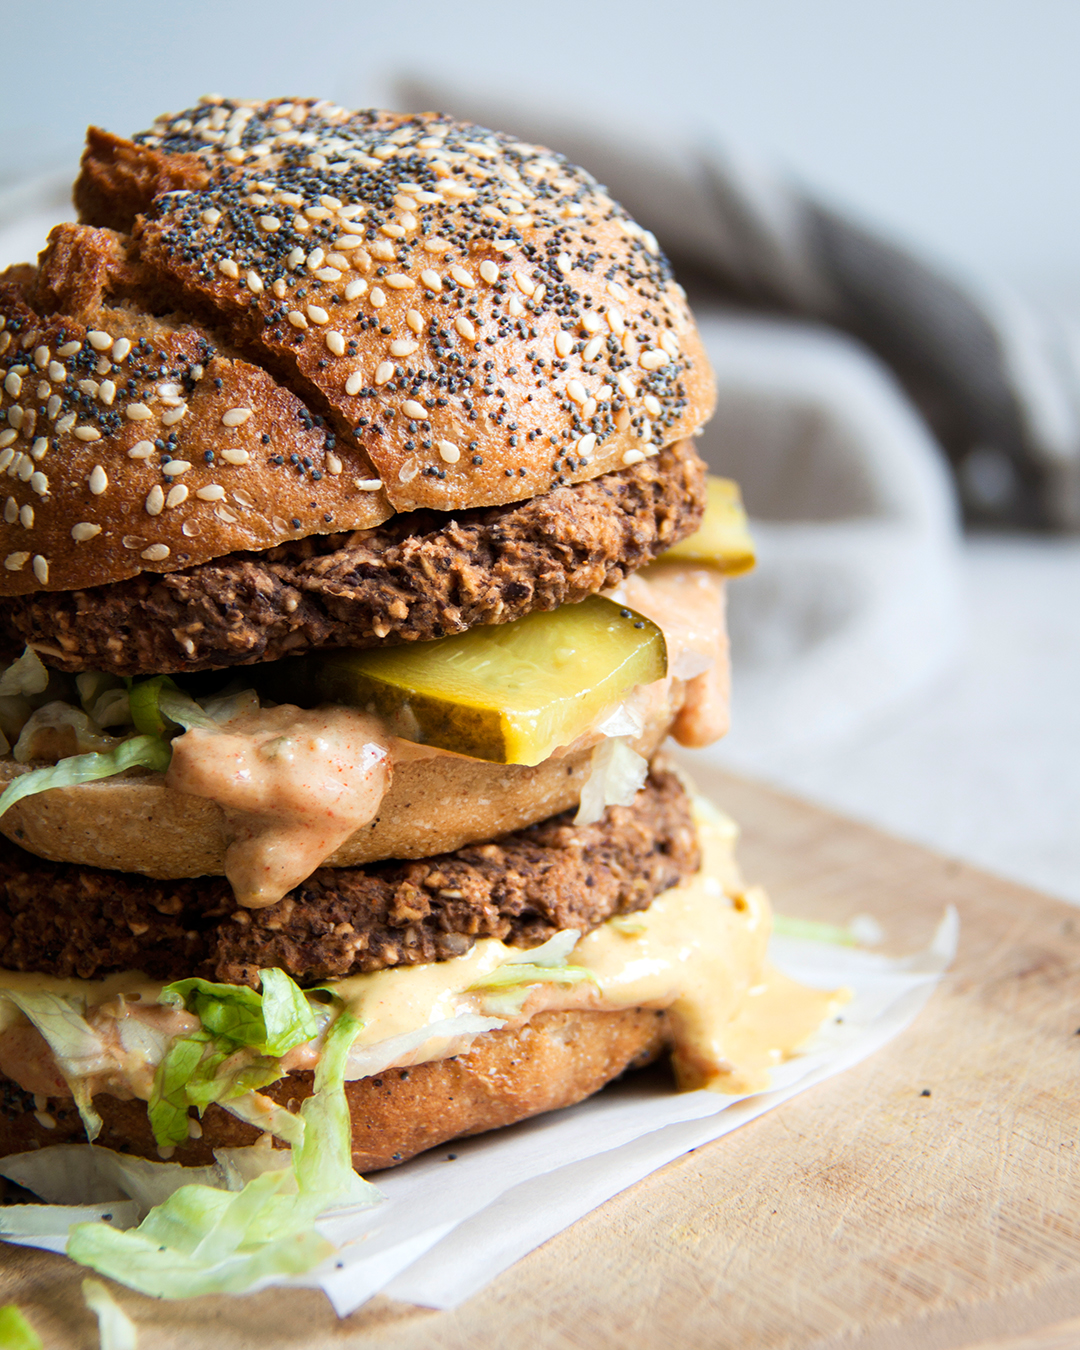 whole-food-plant-based-big-mac-vegan-whole-foods-olievrij-suikervrij-01b.jpg